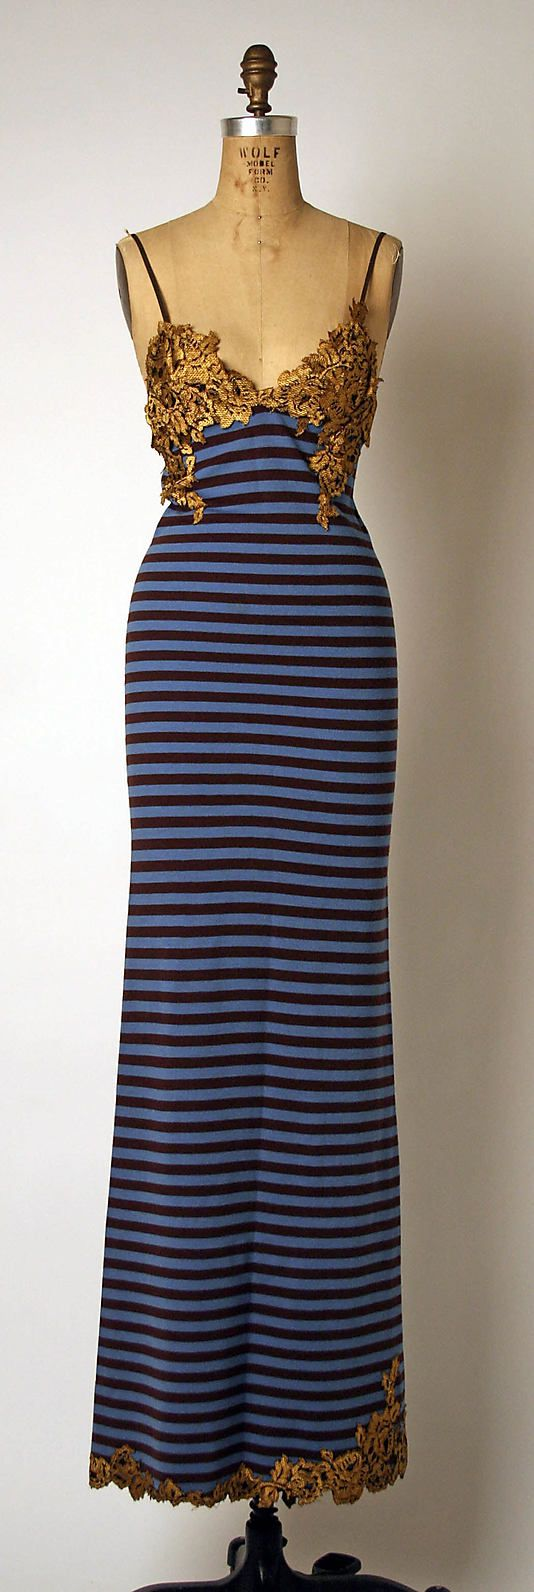 This dress is not built for my body (even if i were a skinny minny). But it is stunning and dynamic.   Ensemble  Geoffrey Beene  (American, 1927–2004)